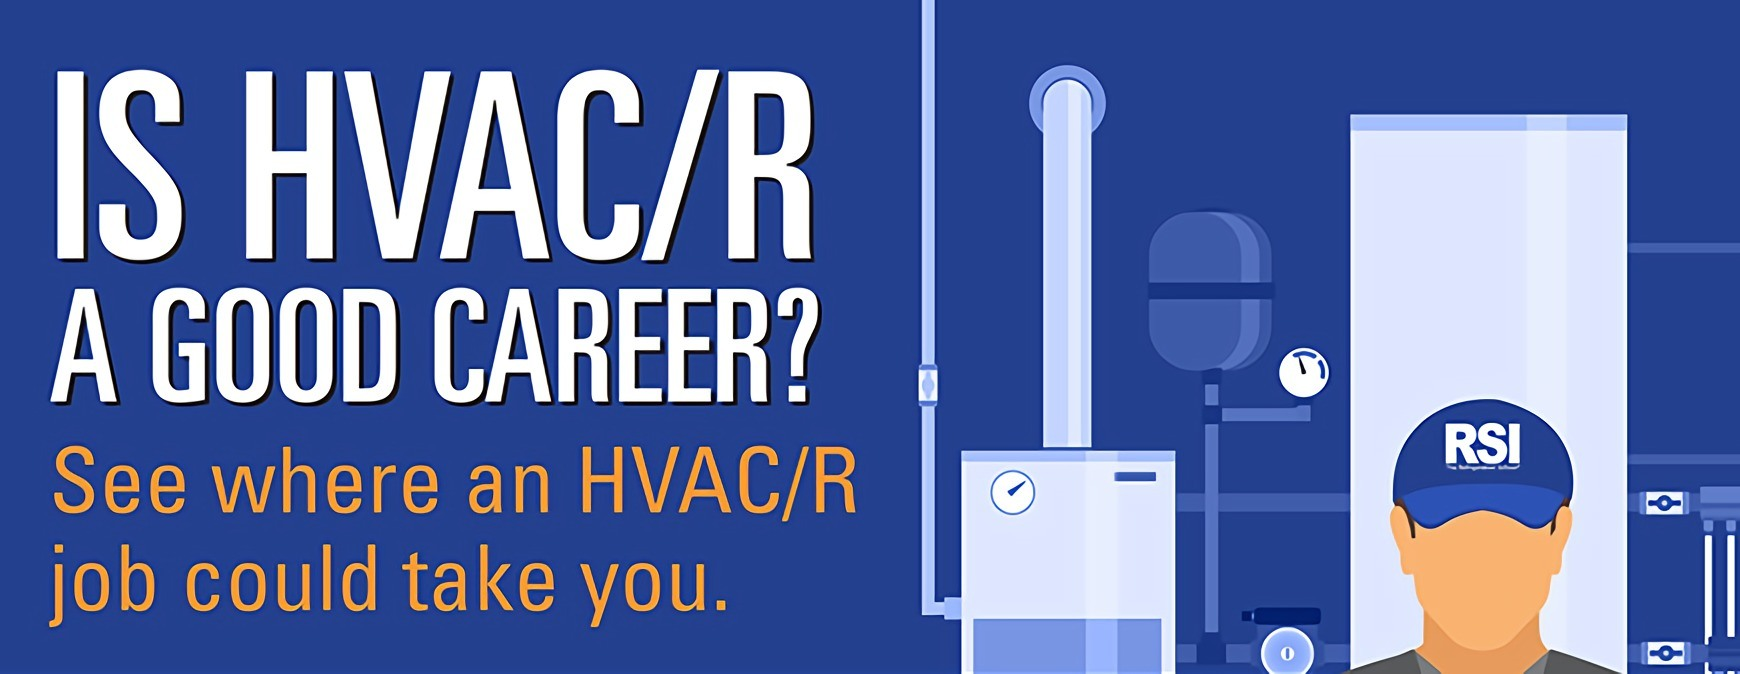 is hvac a good career